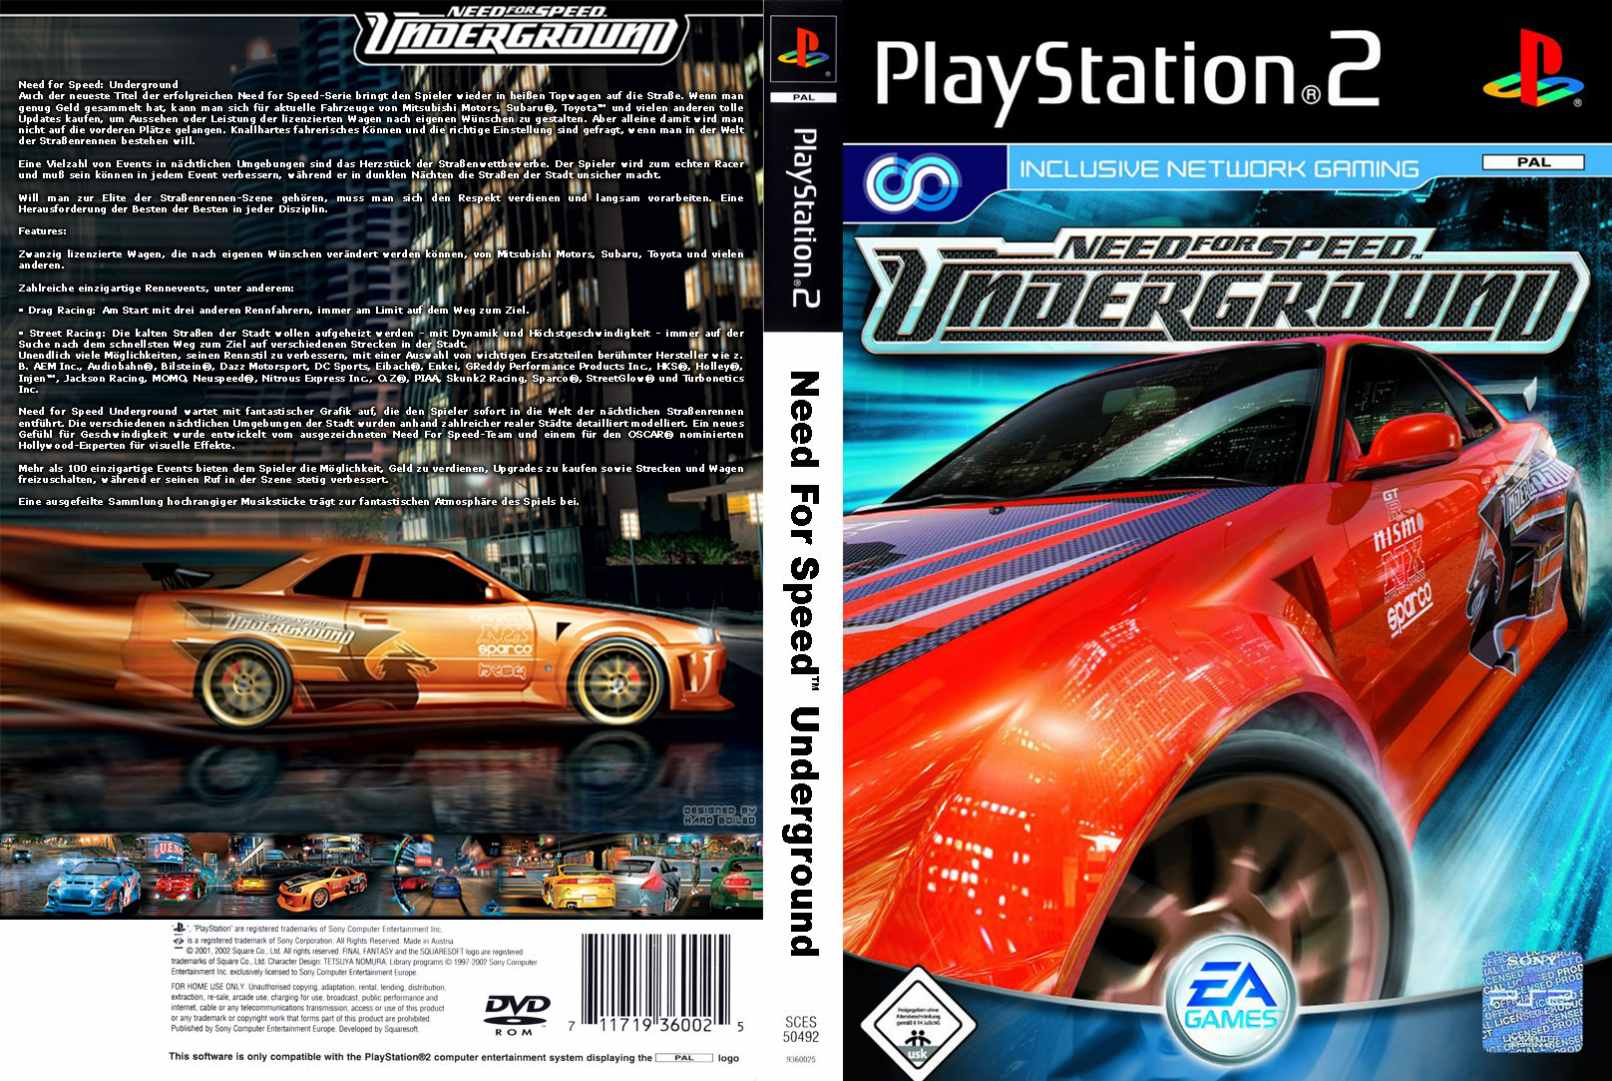 Need For Speed Underground Full Playstation 2 Covers Cover